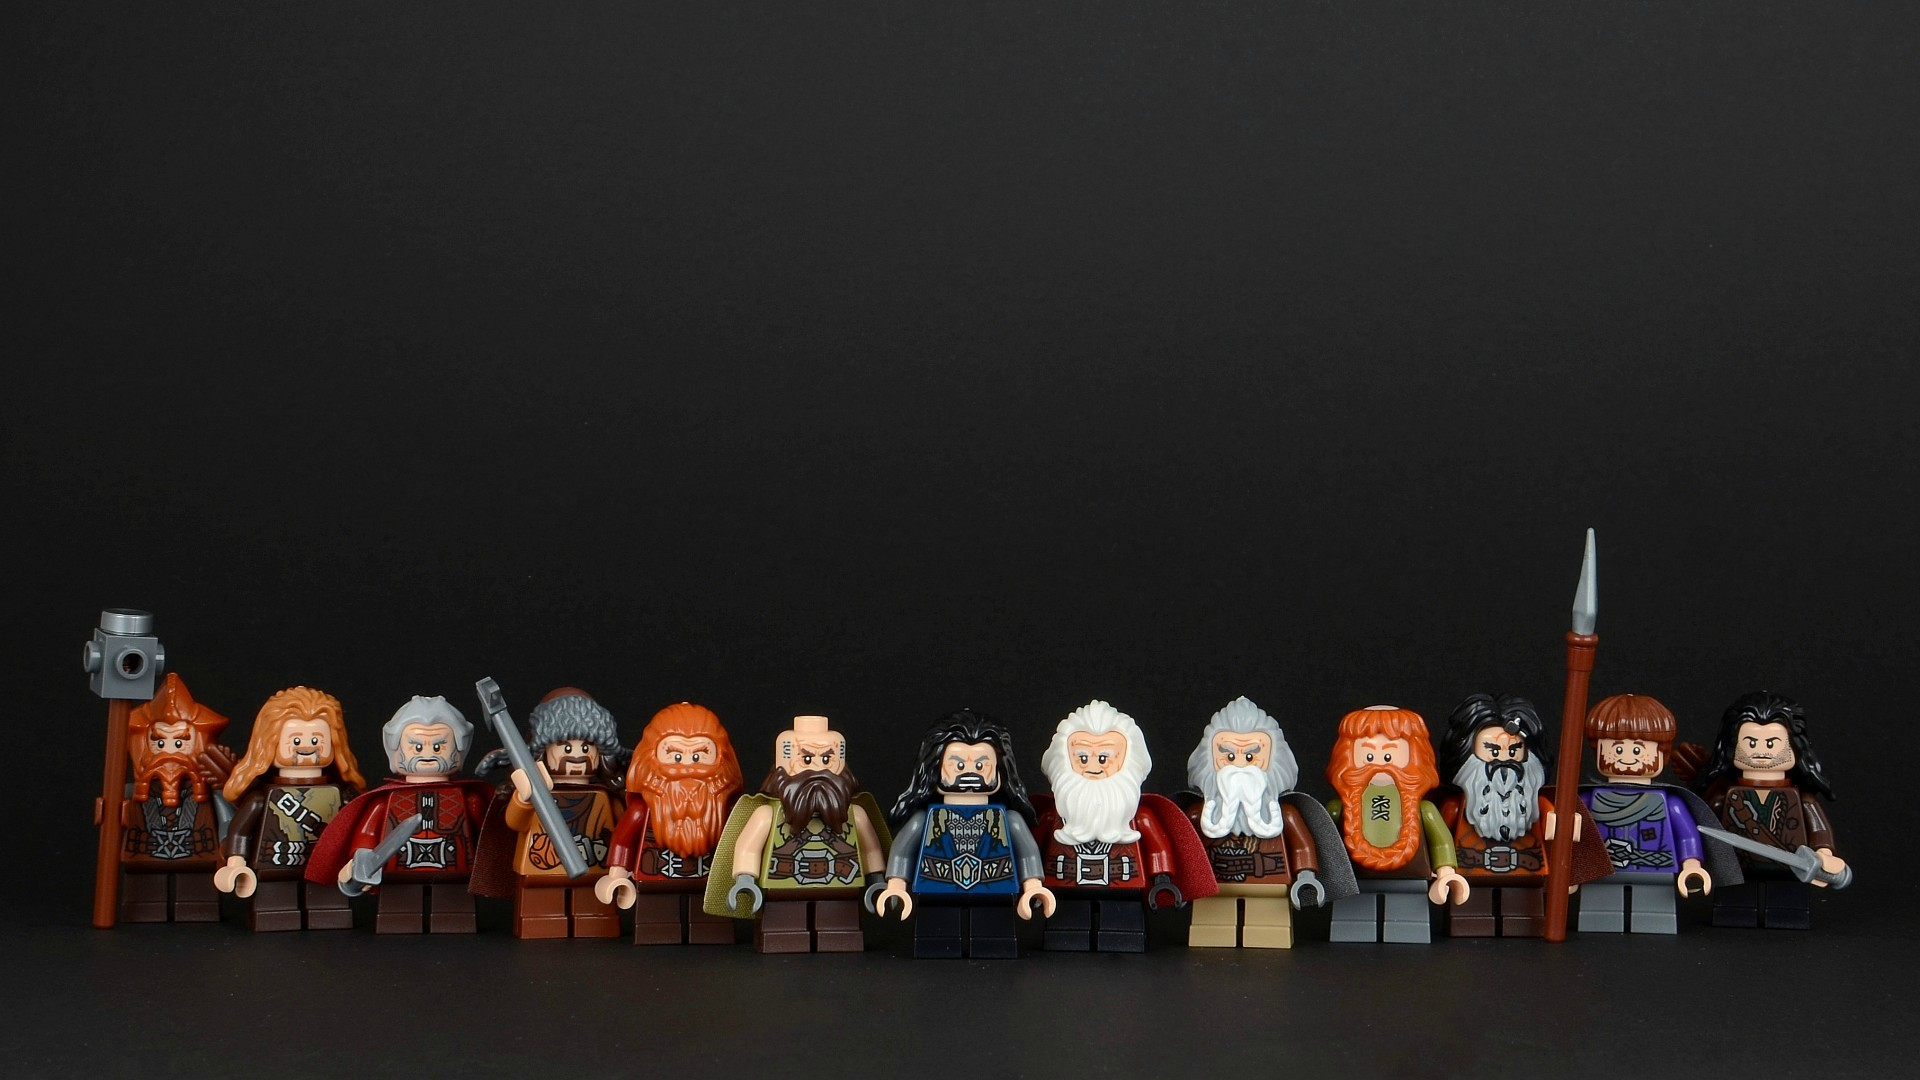 hd lego wallpaper let 39 s talk about